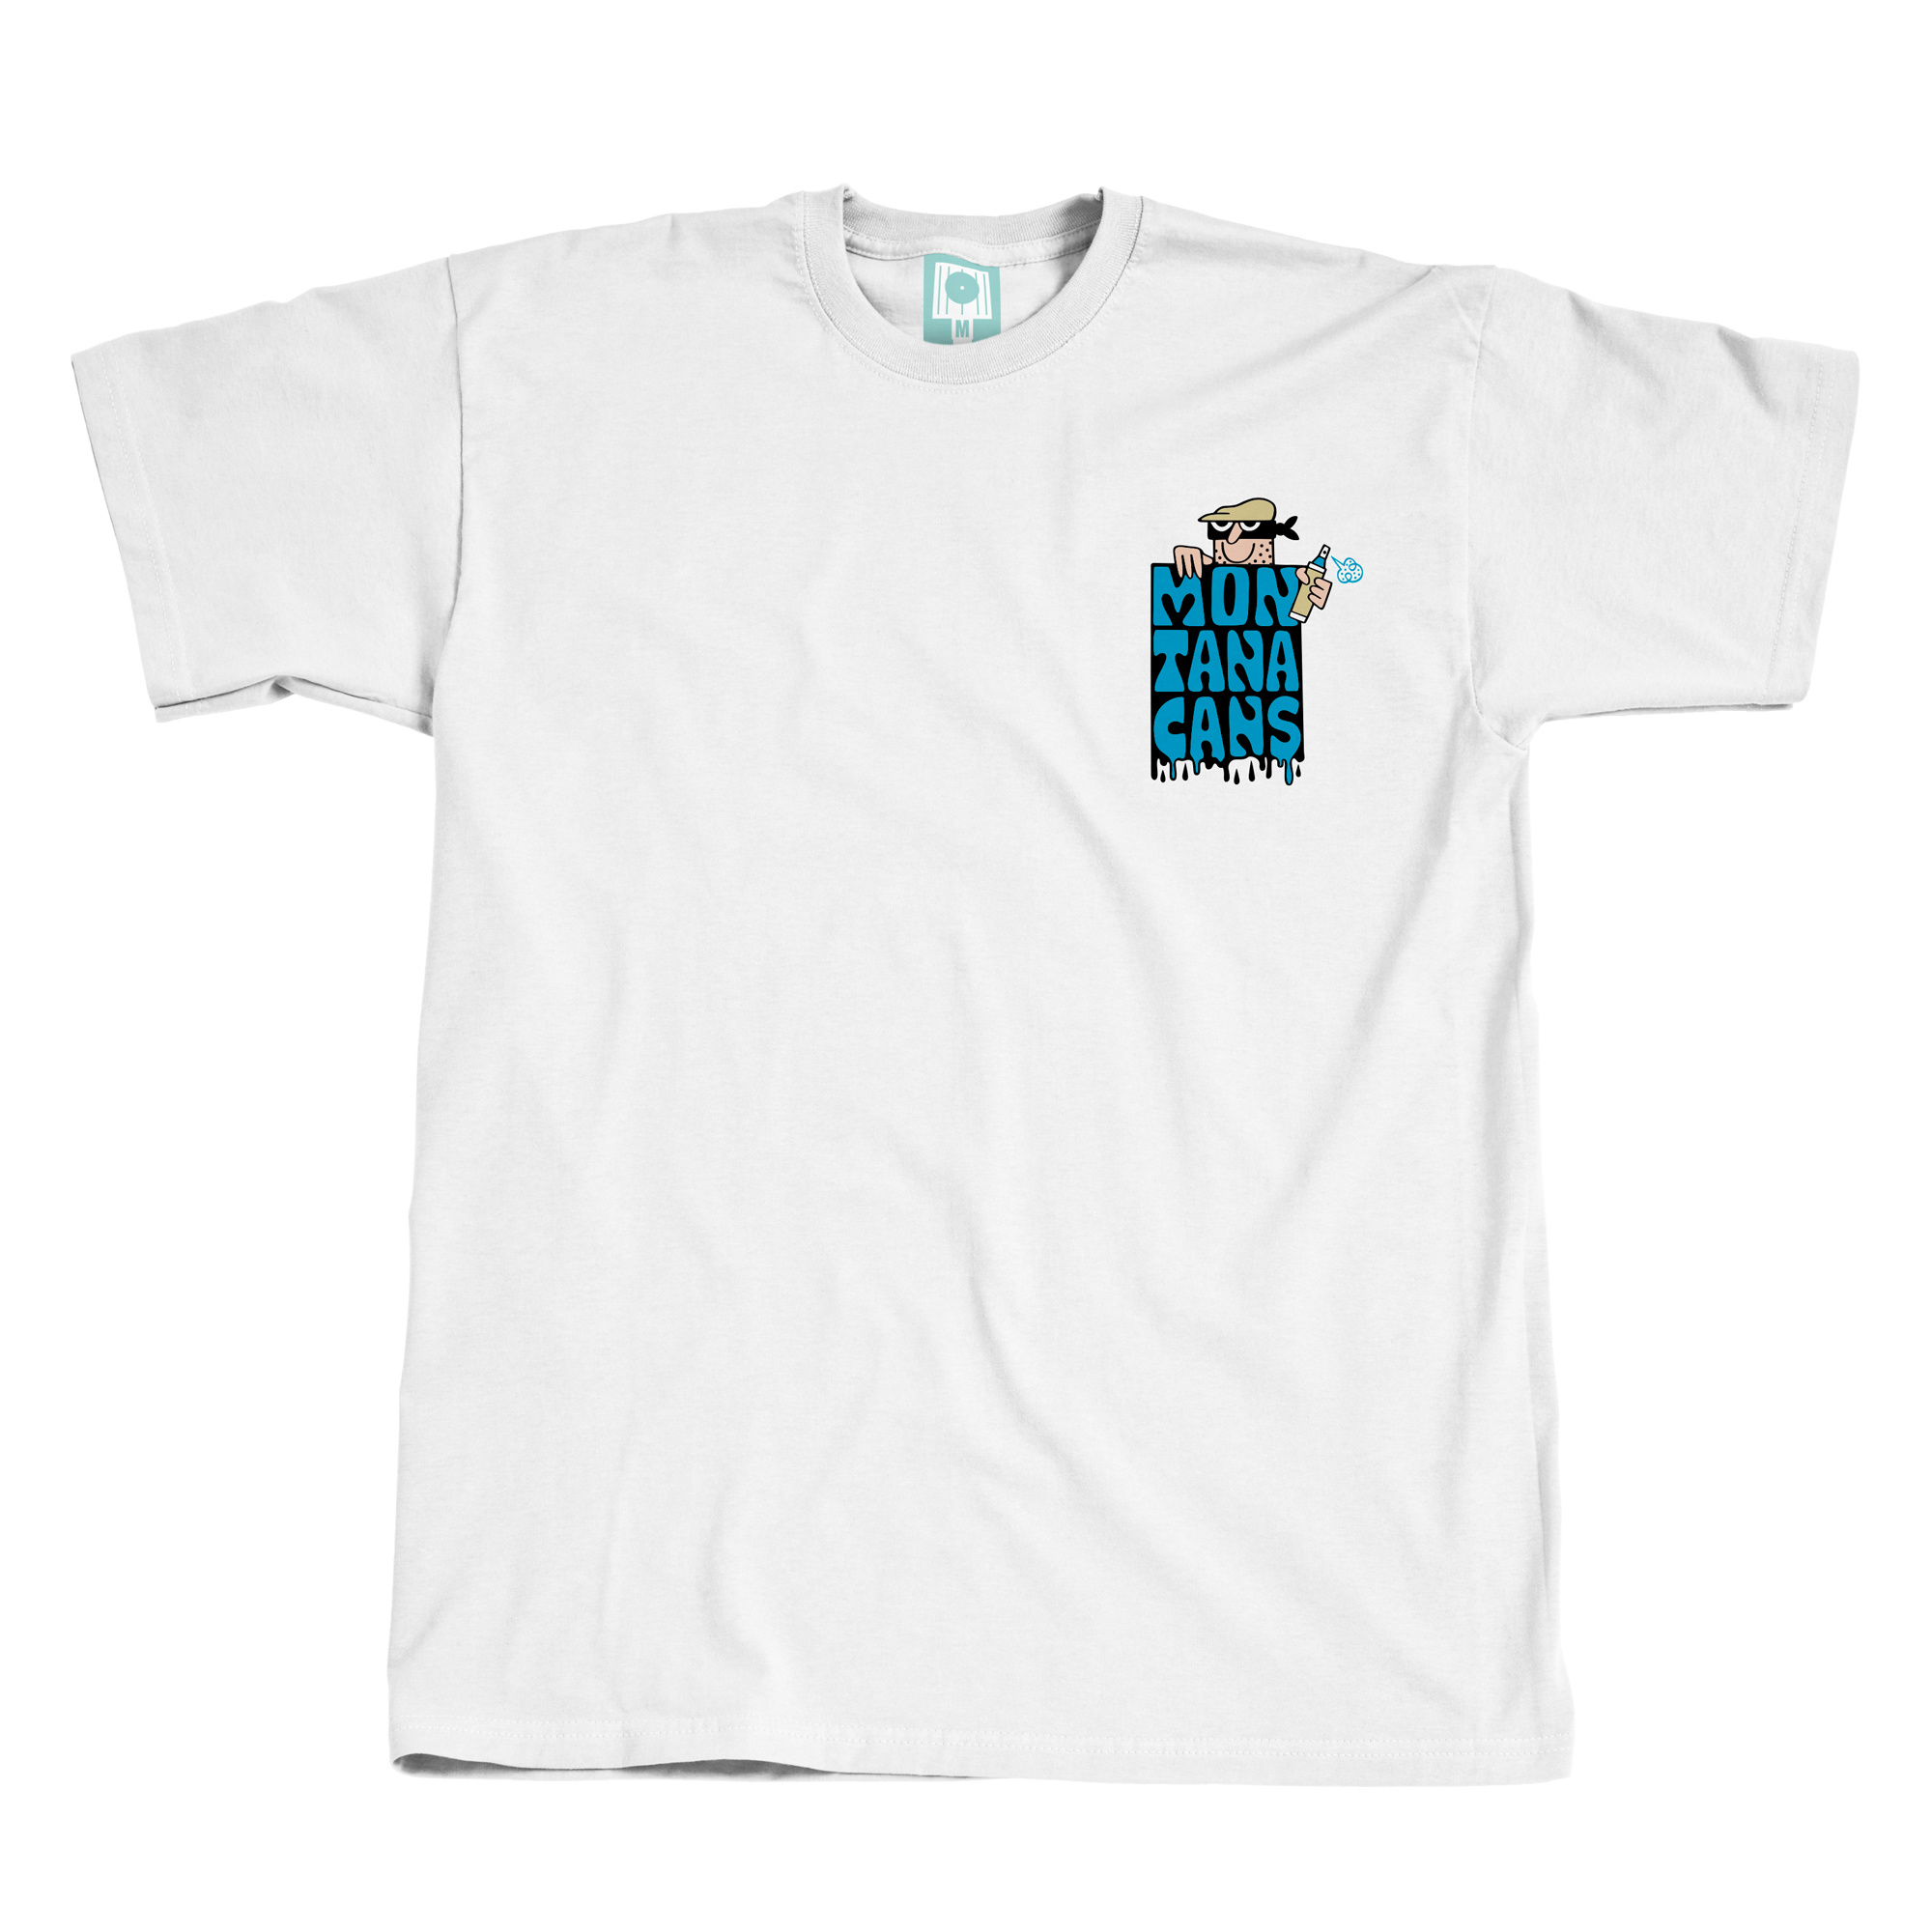 Montana CANS T-SHIRT Exterior Painters BY 45RPM - White